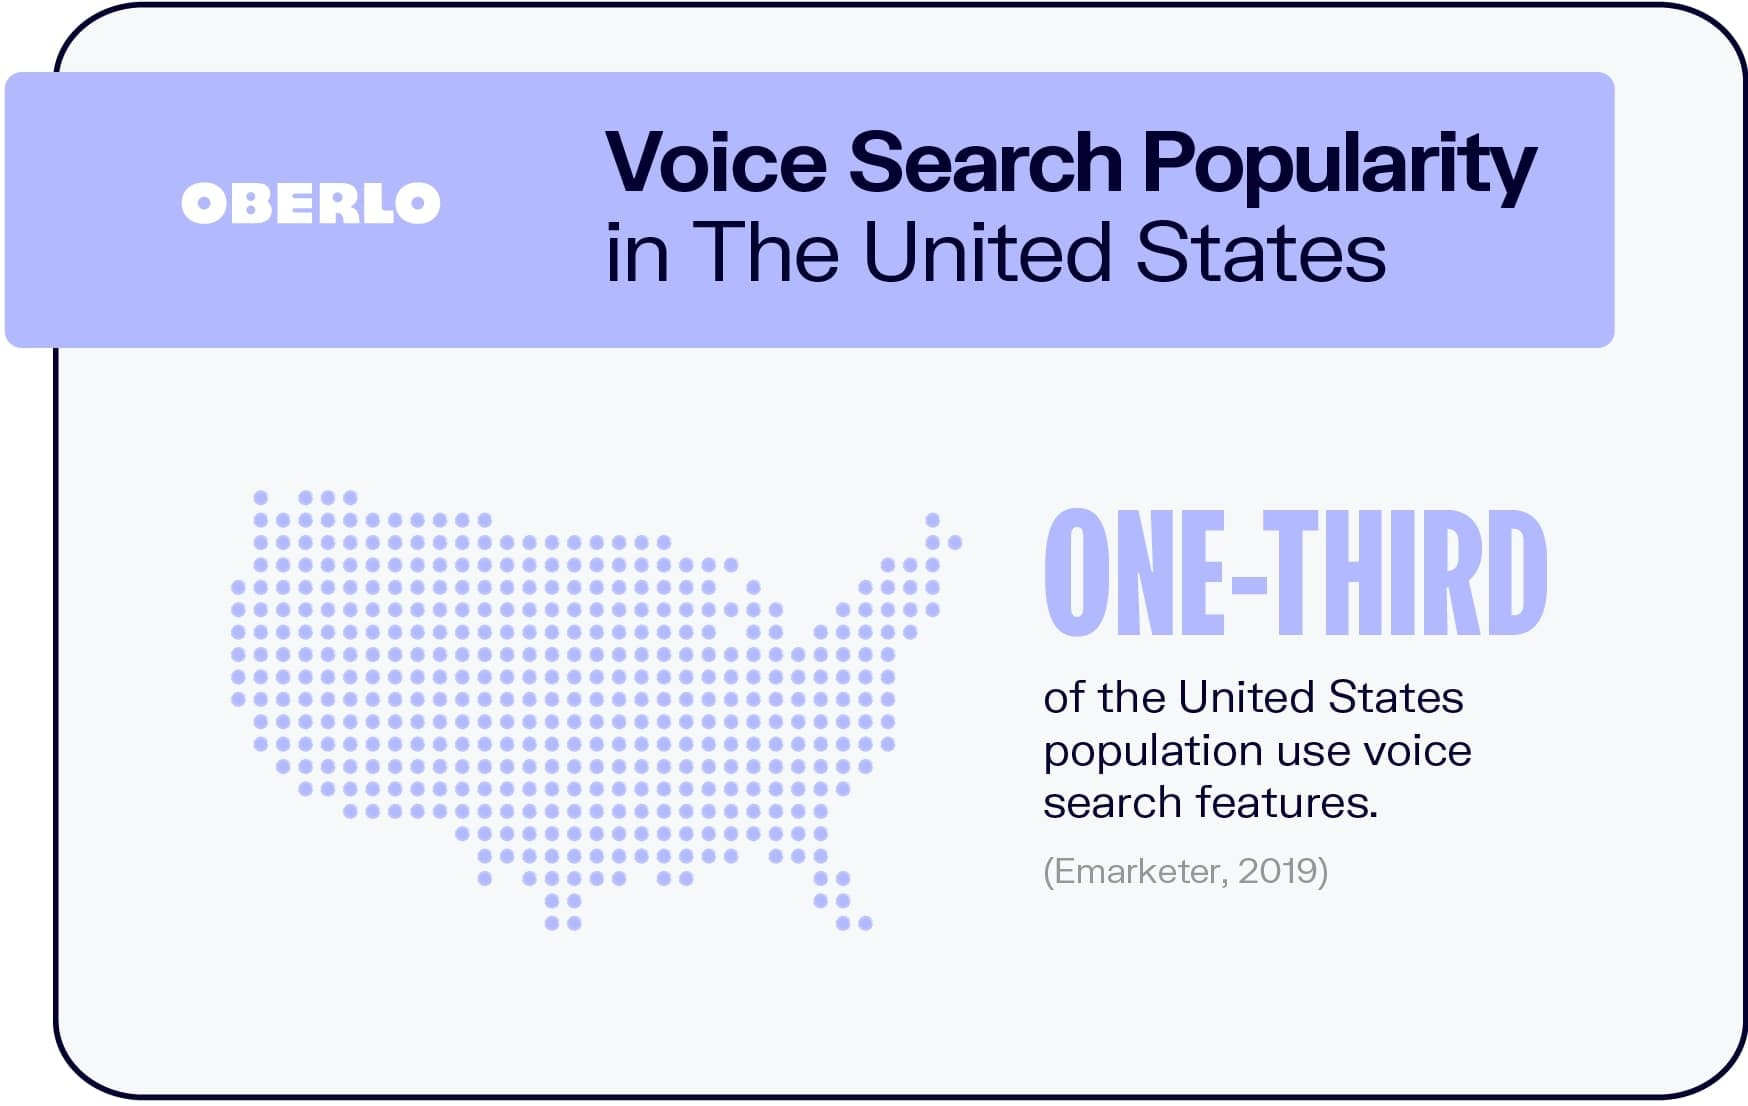 Voice Search Popularity in The United States